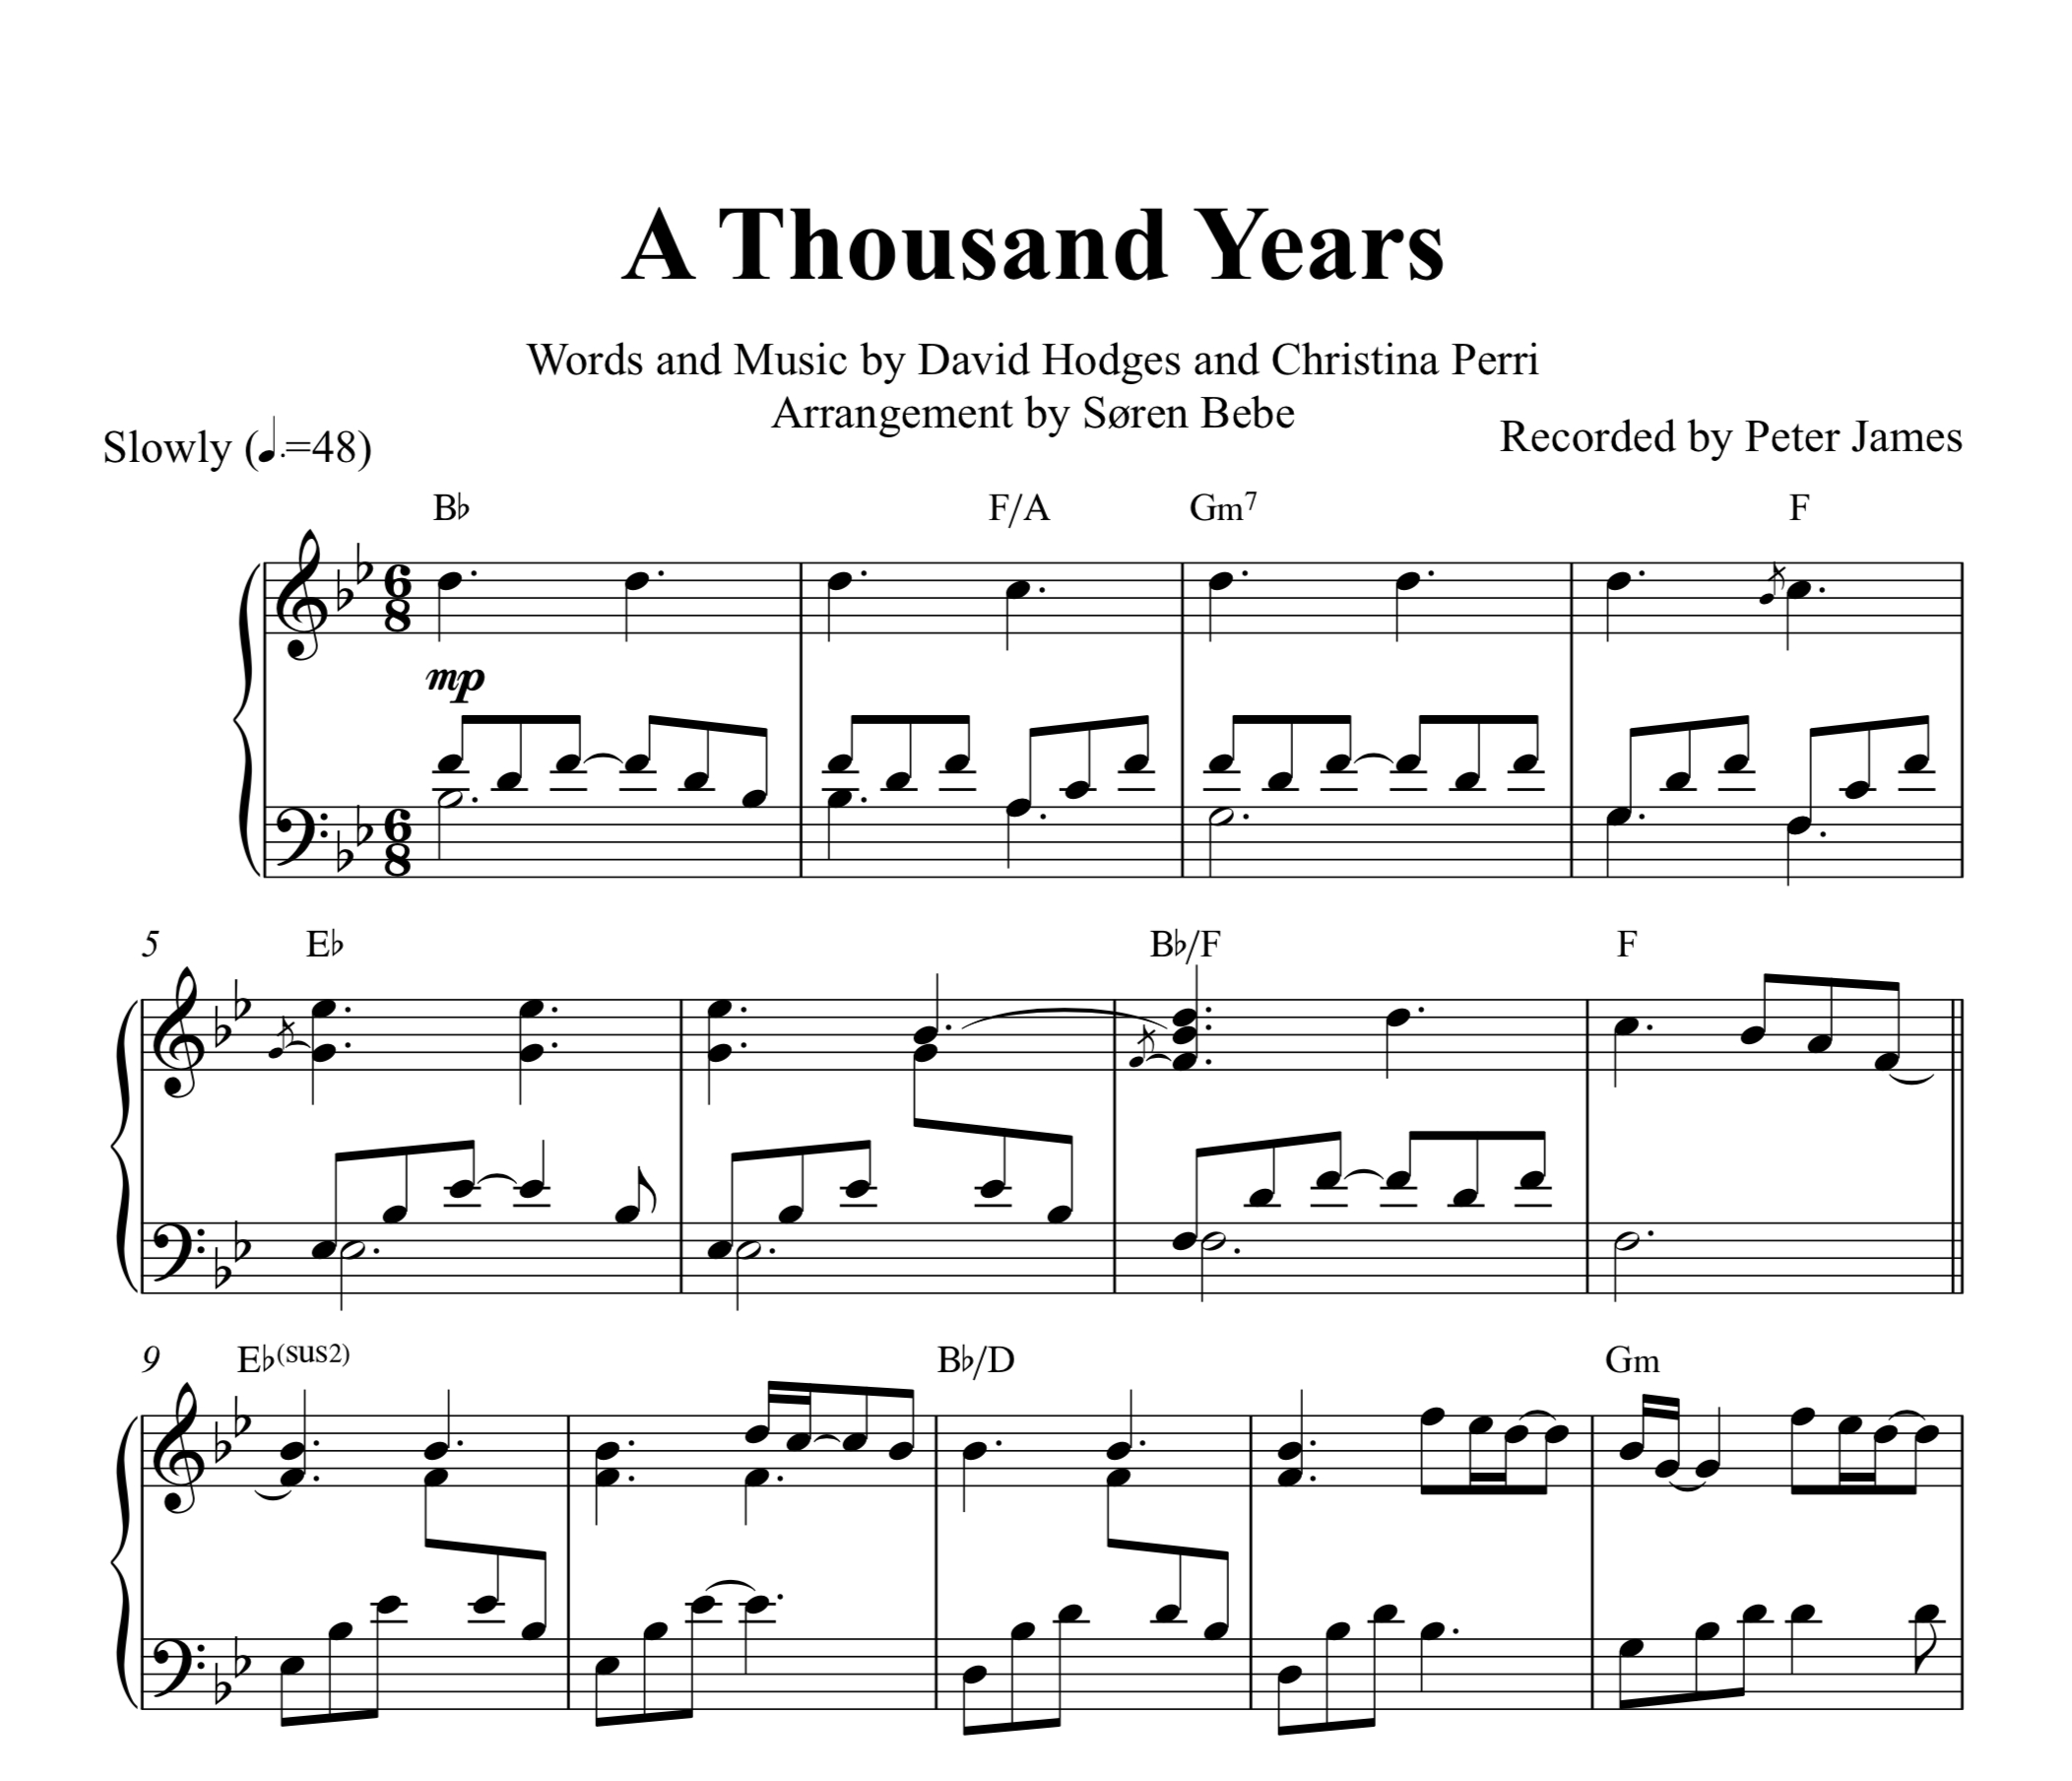 A Thousand Years (Christina Perri) Piano Sheet Music (Pdf) | Music - Free Printable Music Sheets Pdf